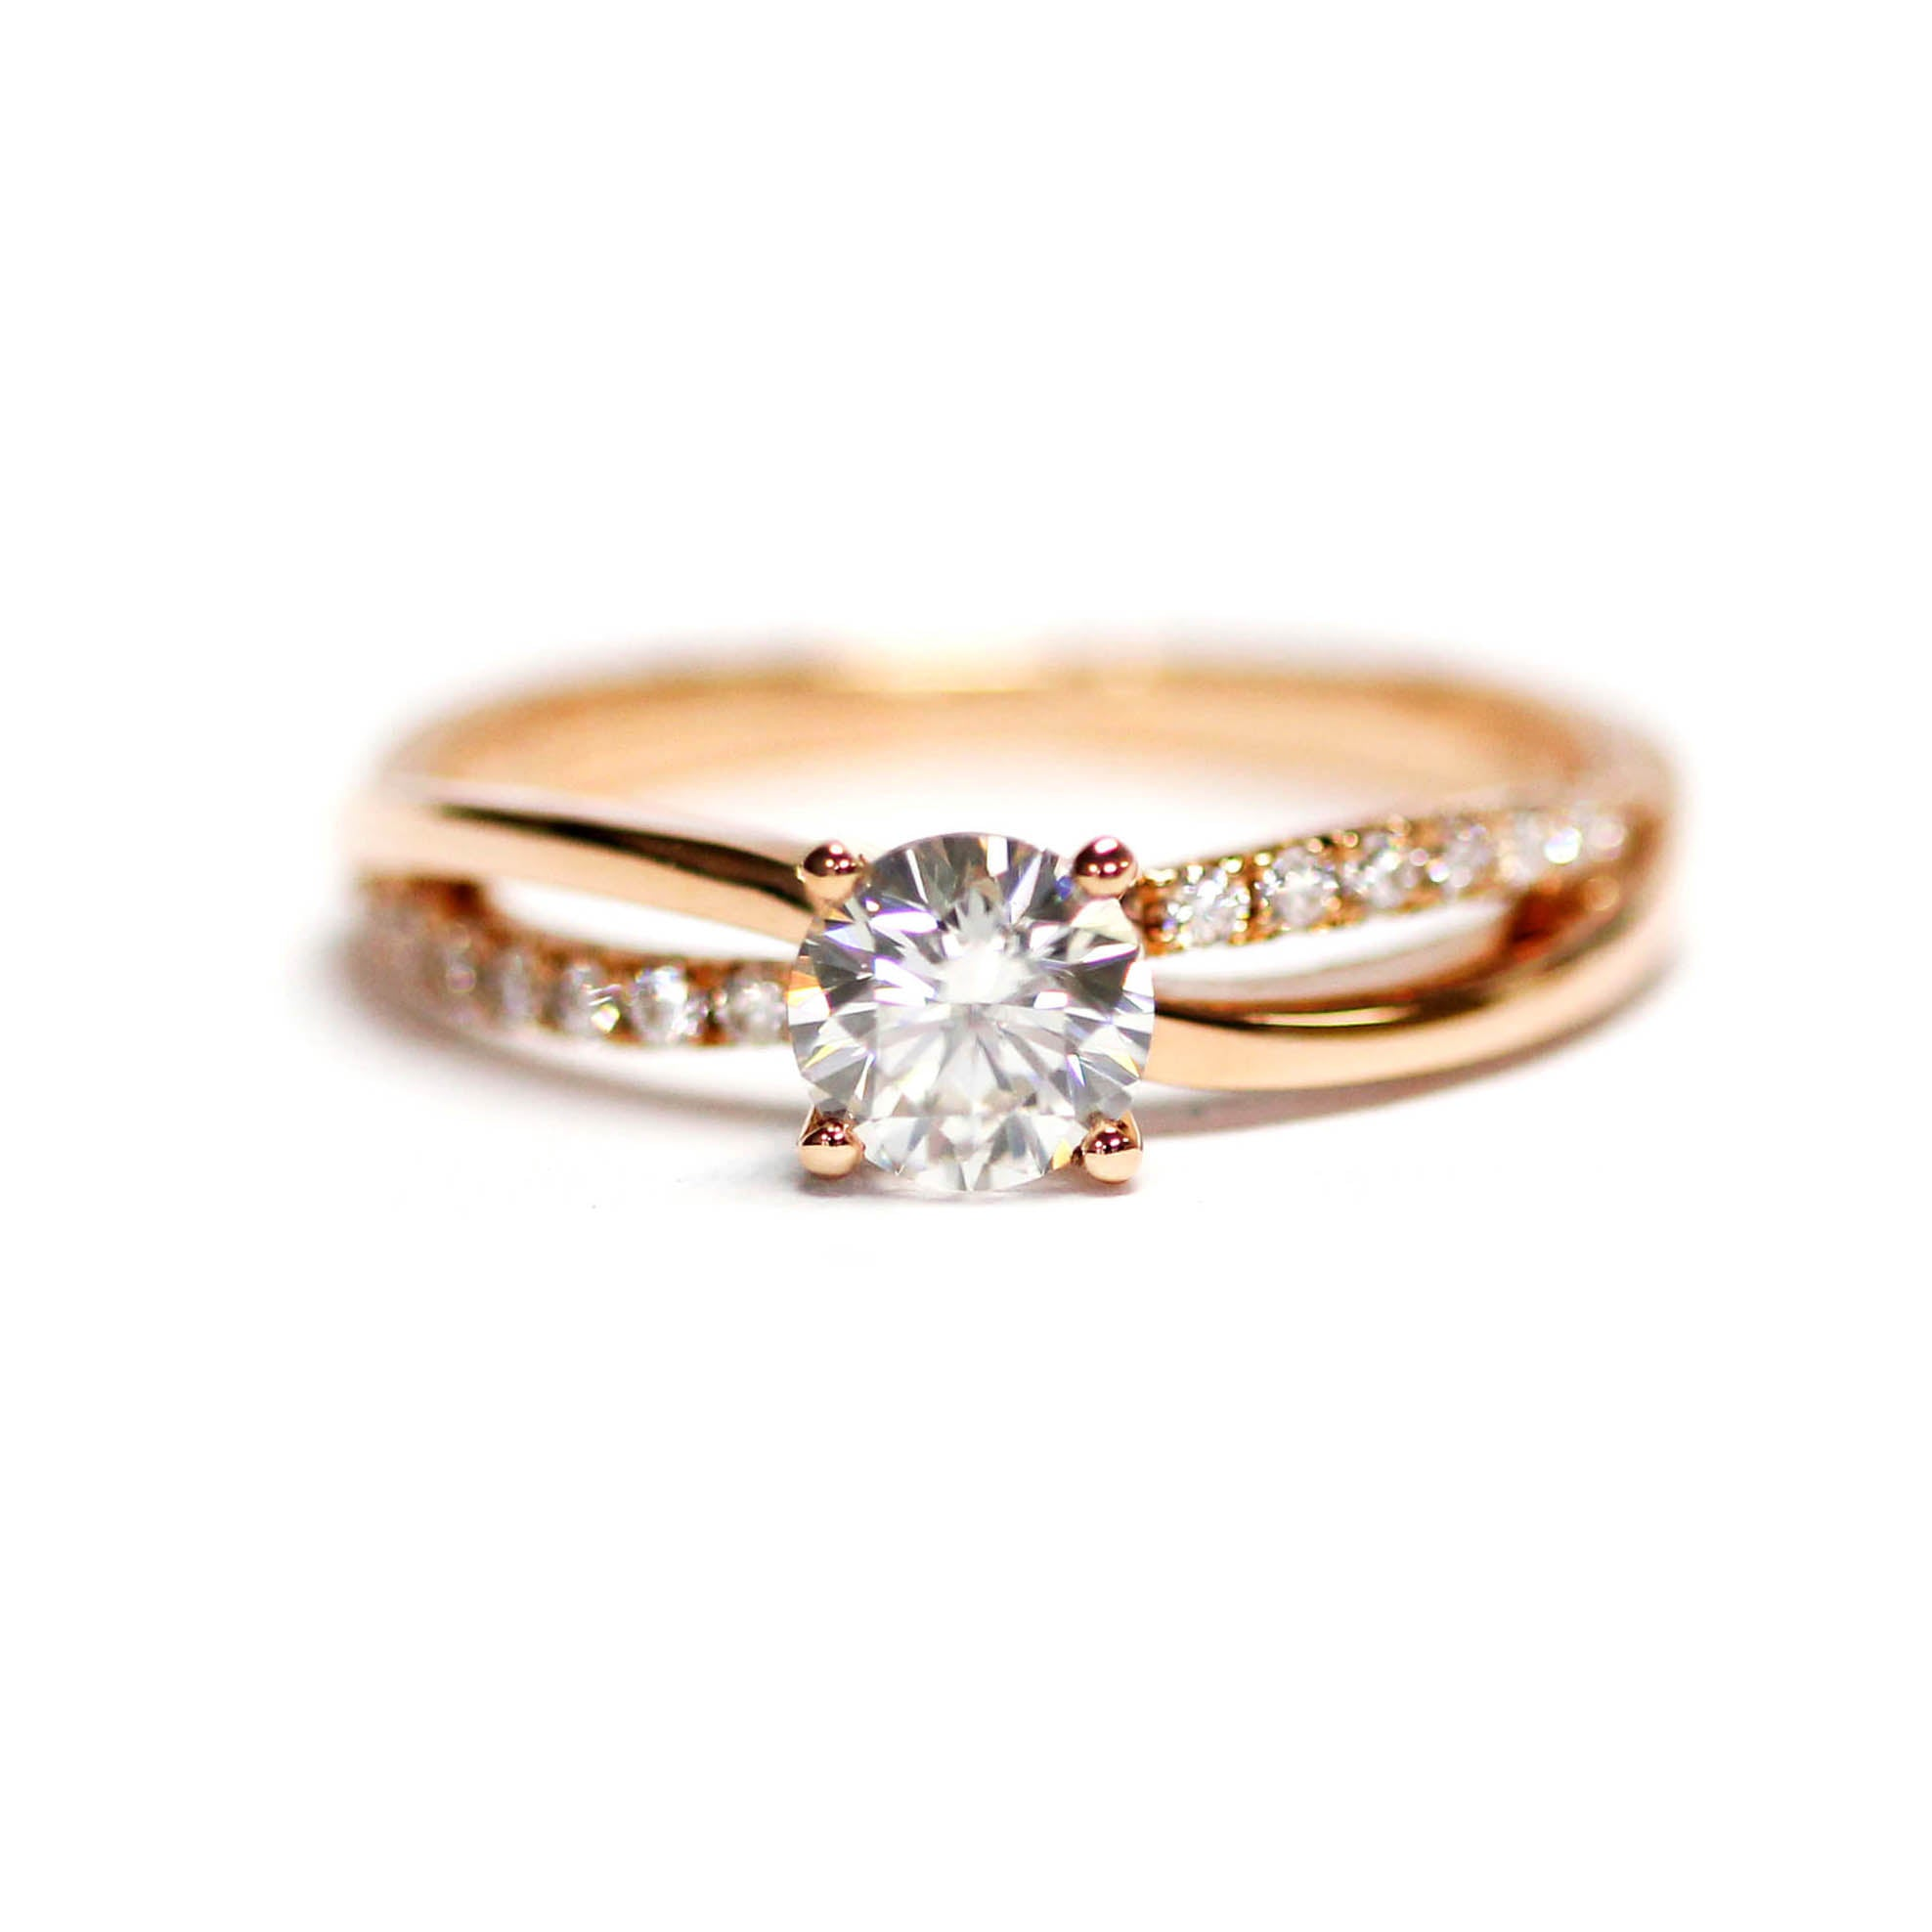 Round Brilliant Moissanite Solitaire Accents 18K Rose Gold Ring